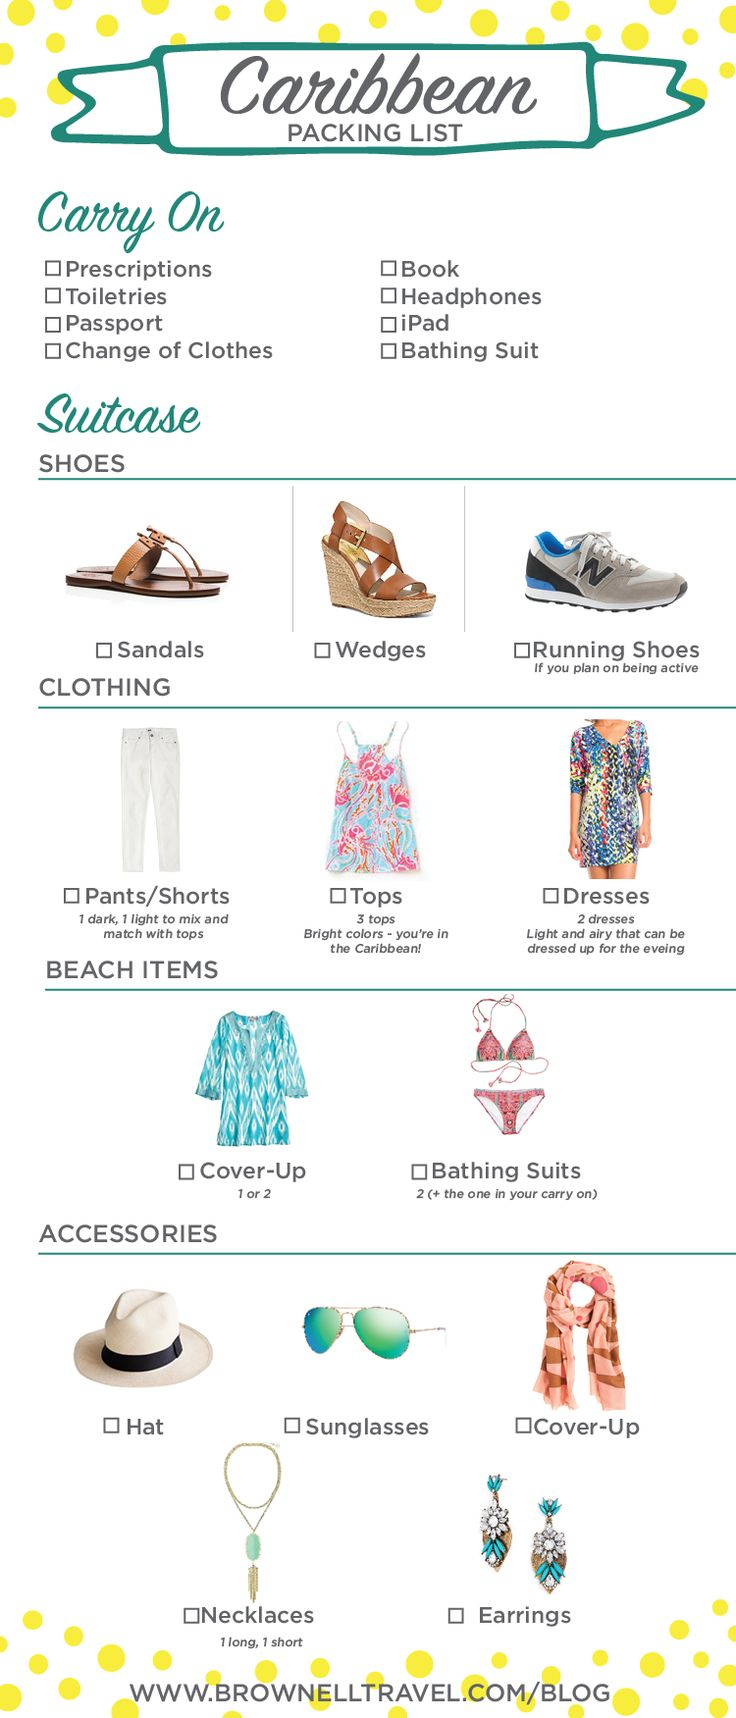 Caribbean Packing List - Make packing for your warm weather getaway a breeze!